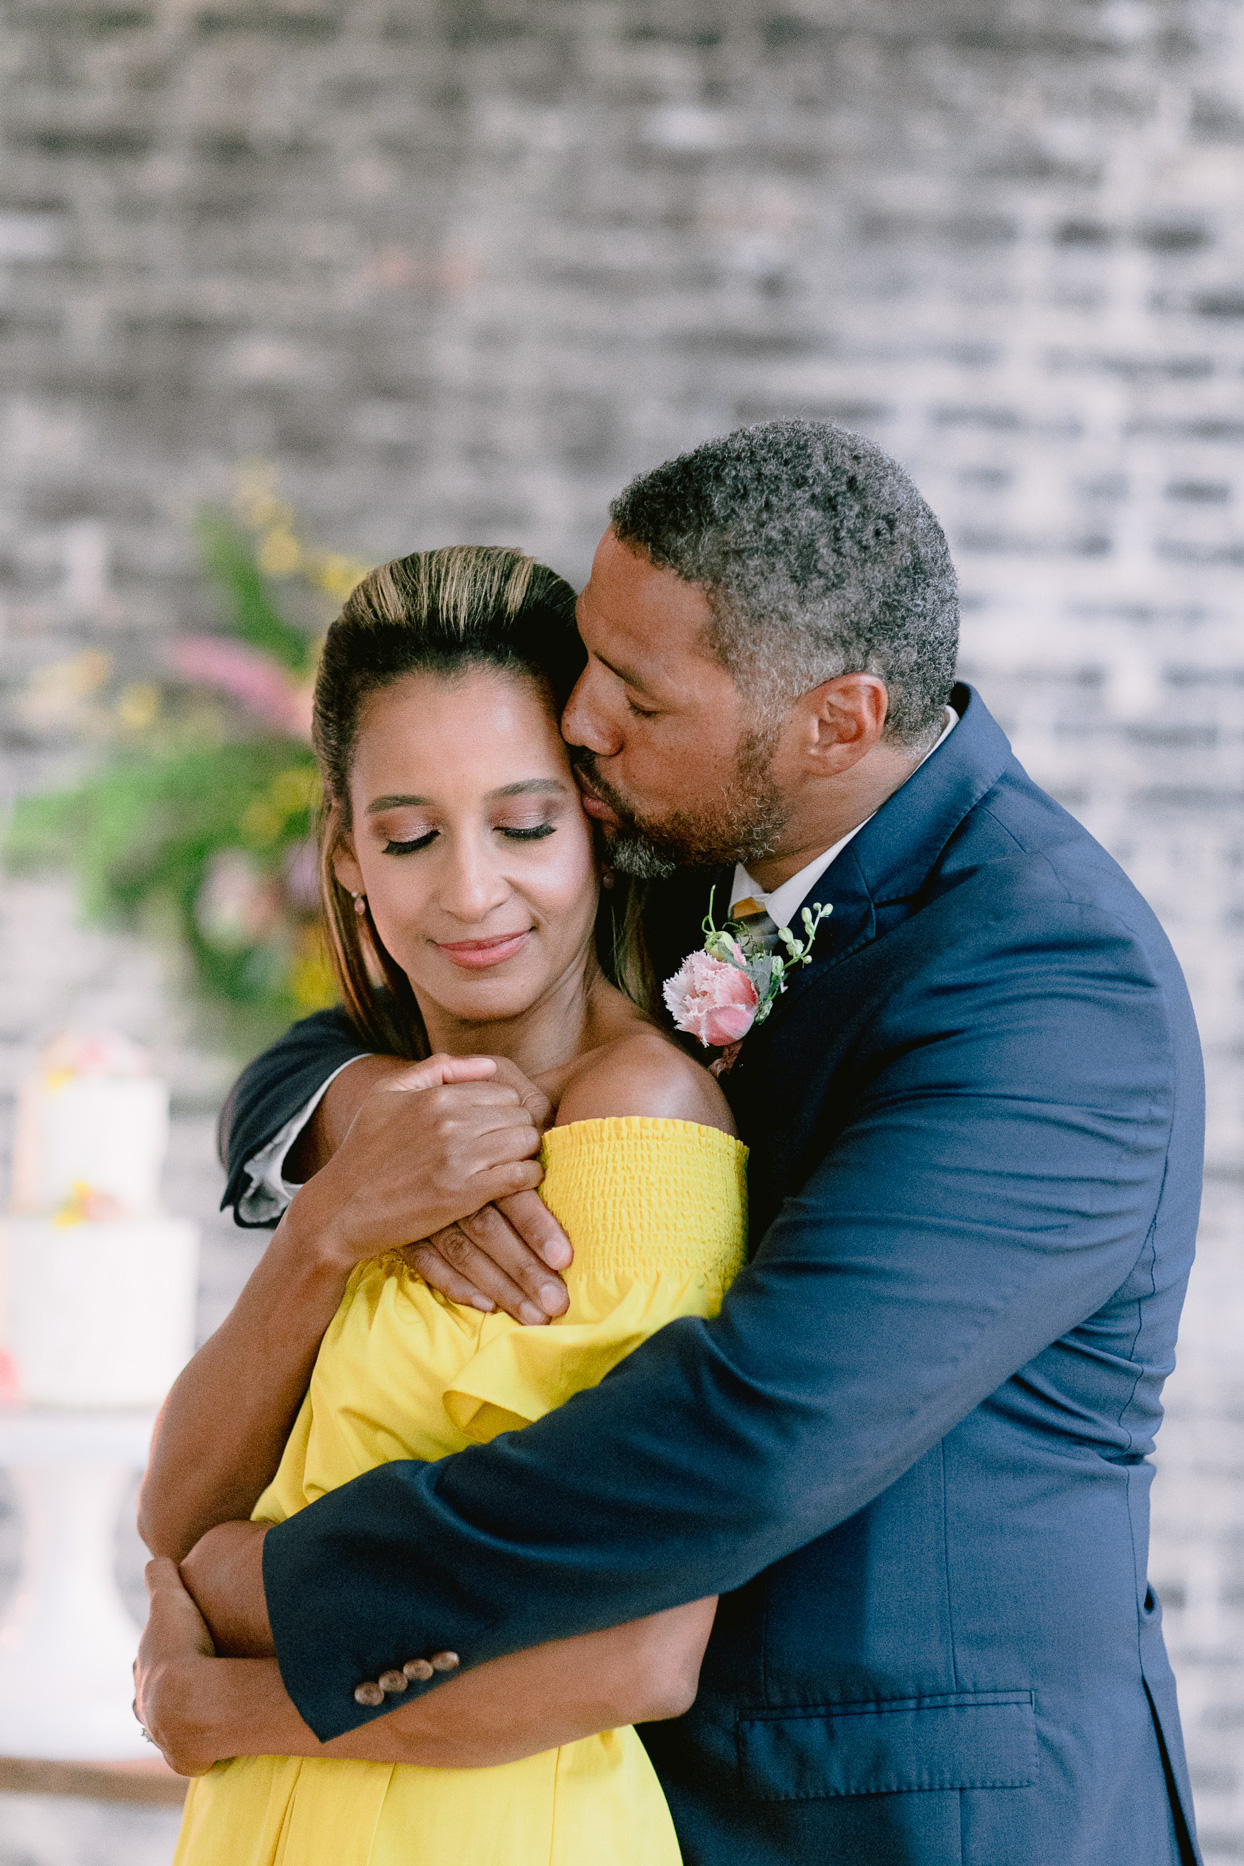 bride in yellow dress and groom embracing for portrait